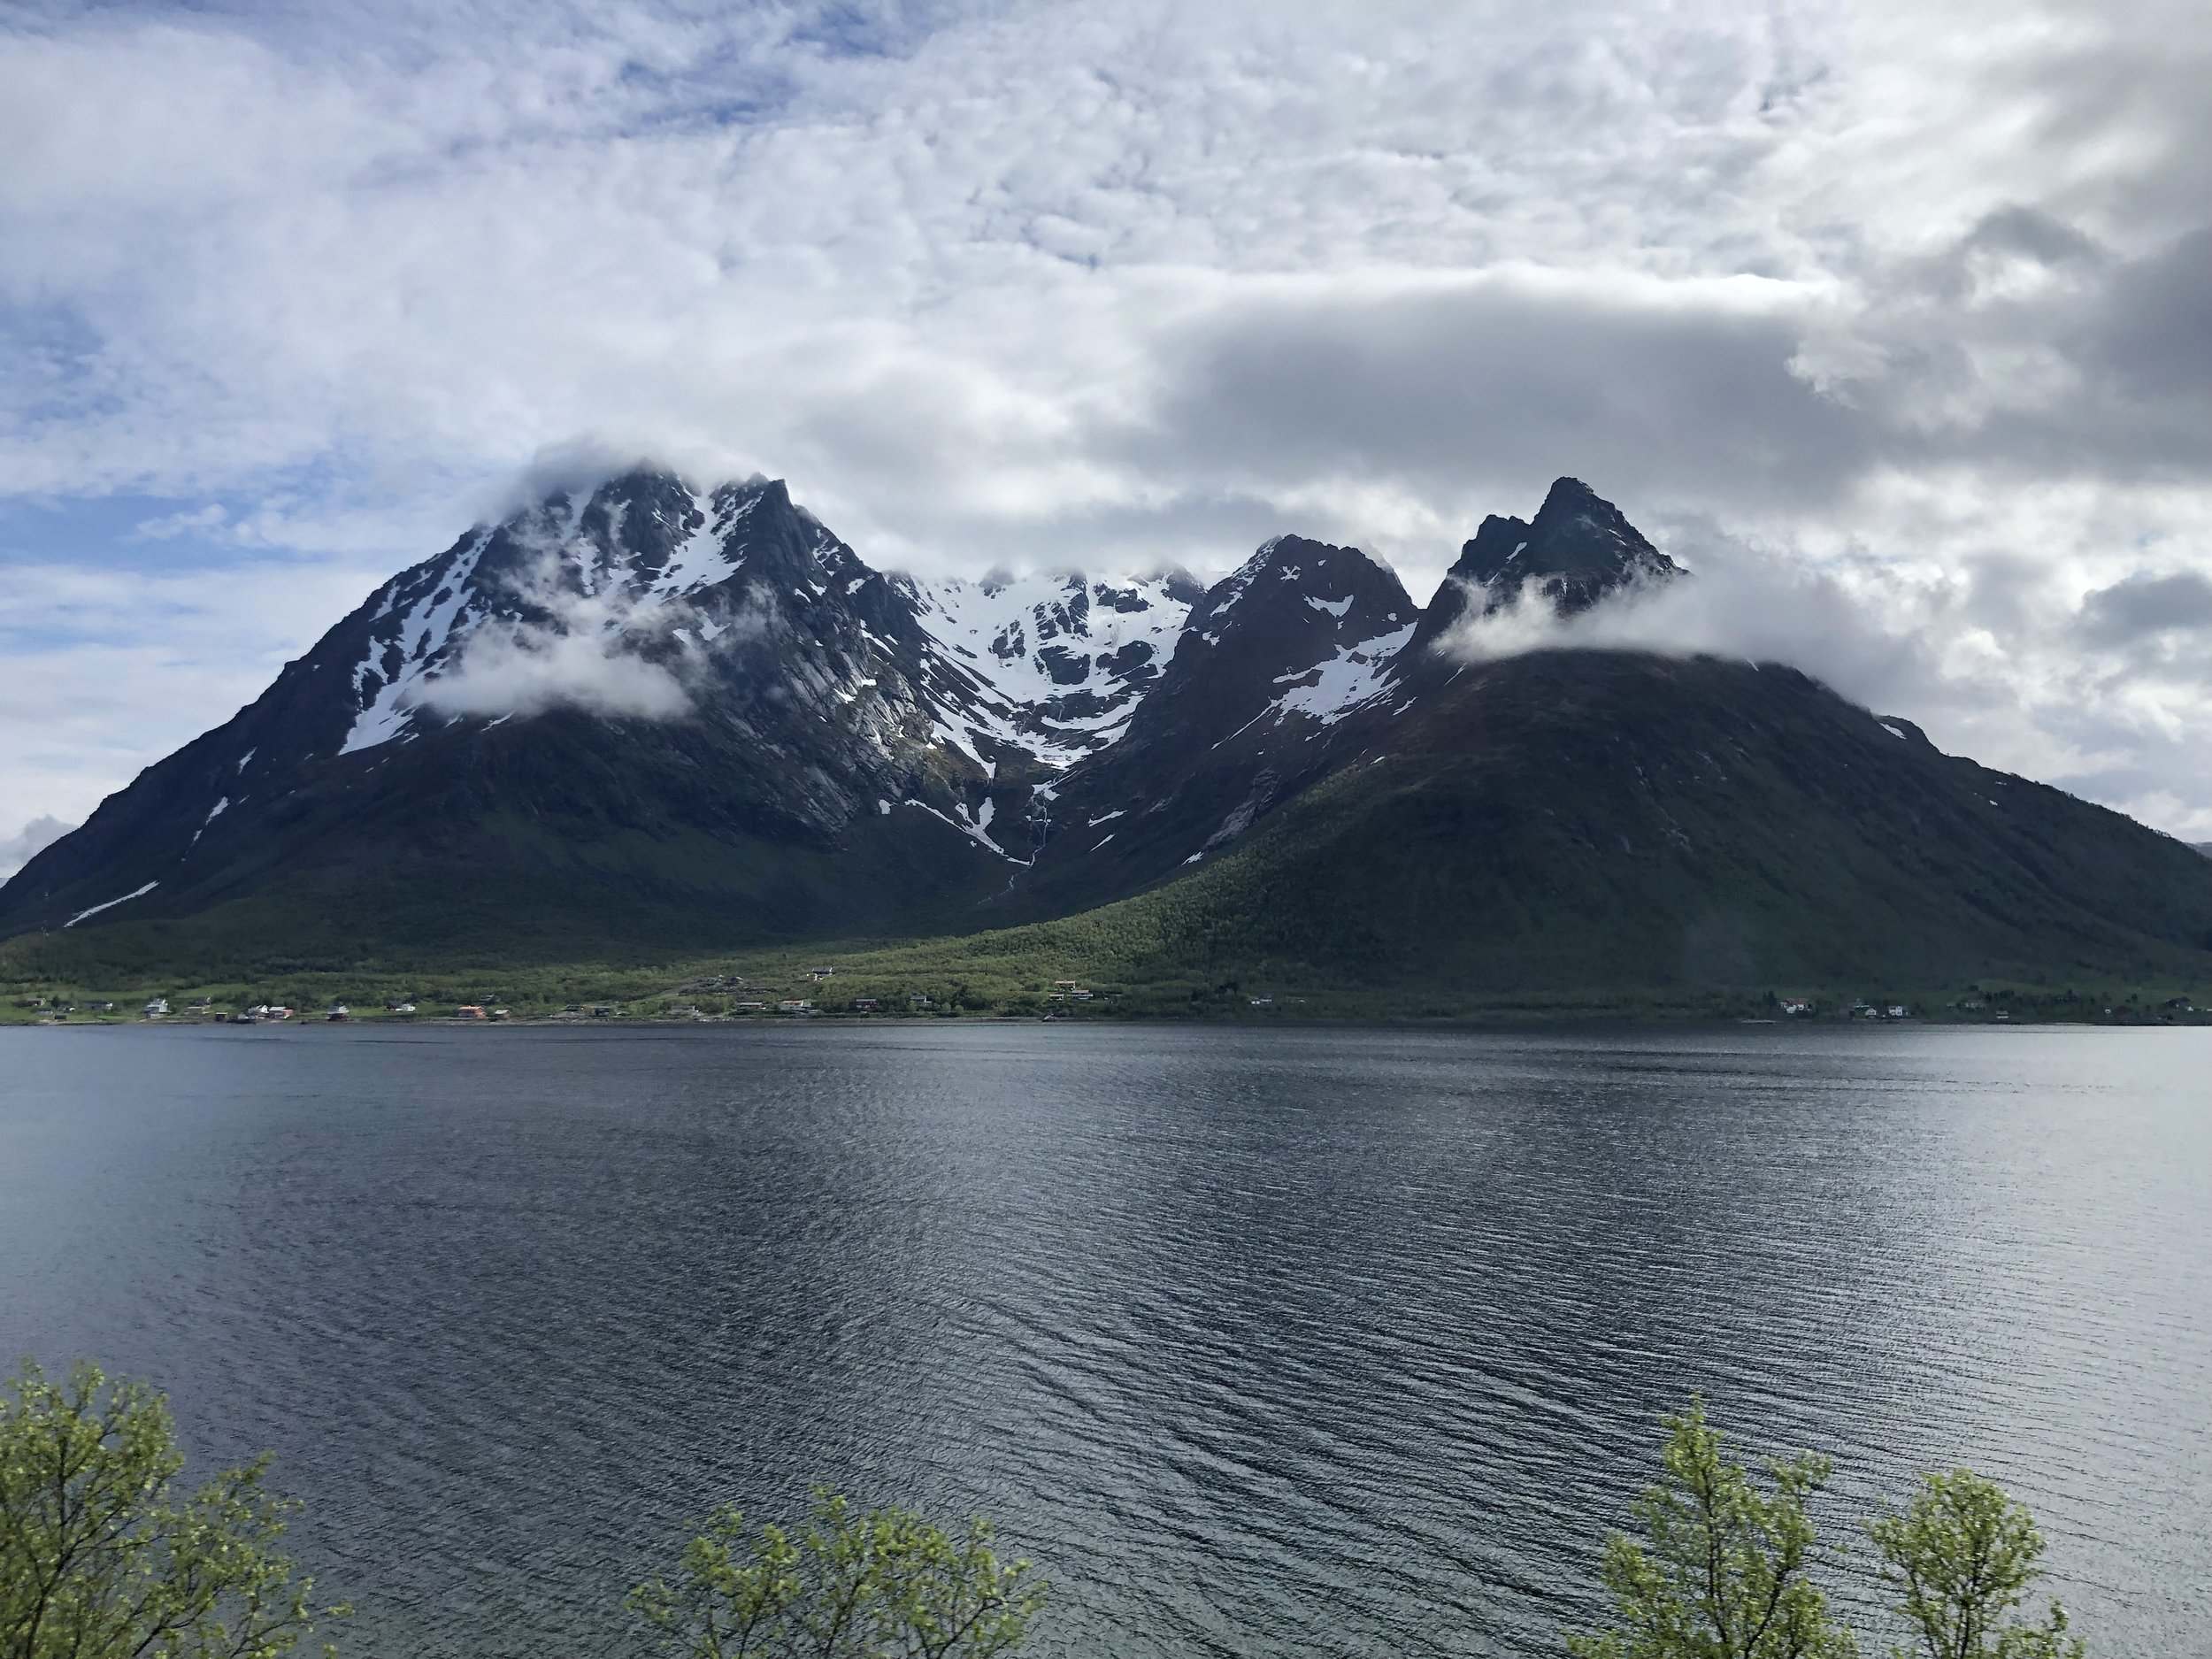 After a couple days we took the bus from Svolvaer to Narvik. We were told that ride was boring and uneventful. That was not the case. There were spectacular views in all directions the entire trip to Narvik. This photo and the one below were taken from the bus.